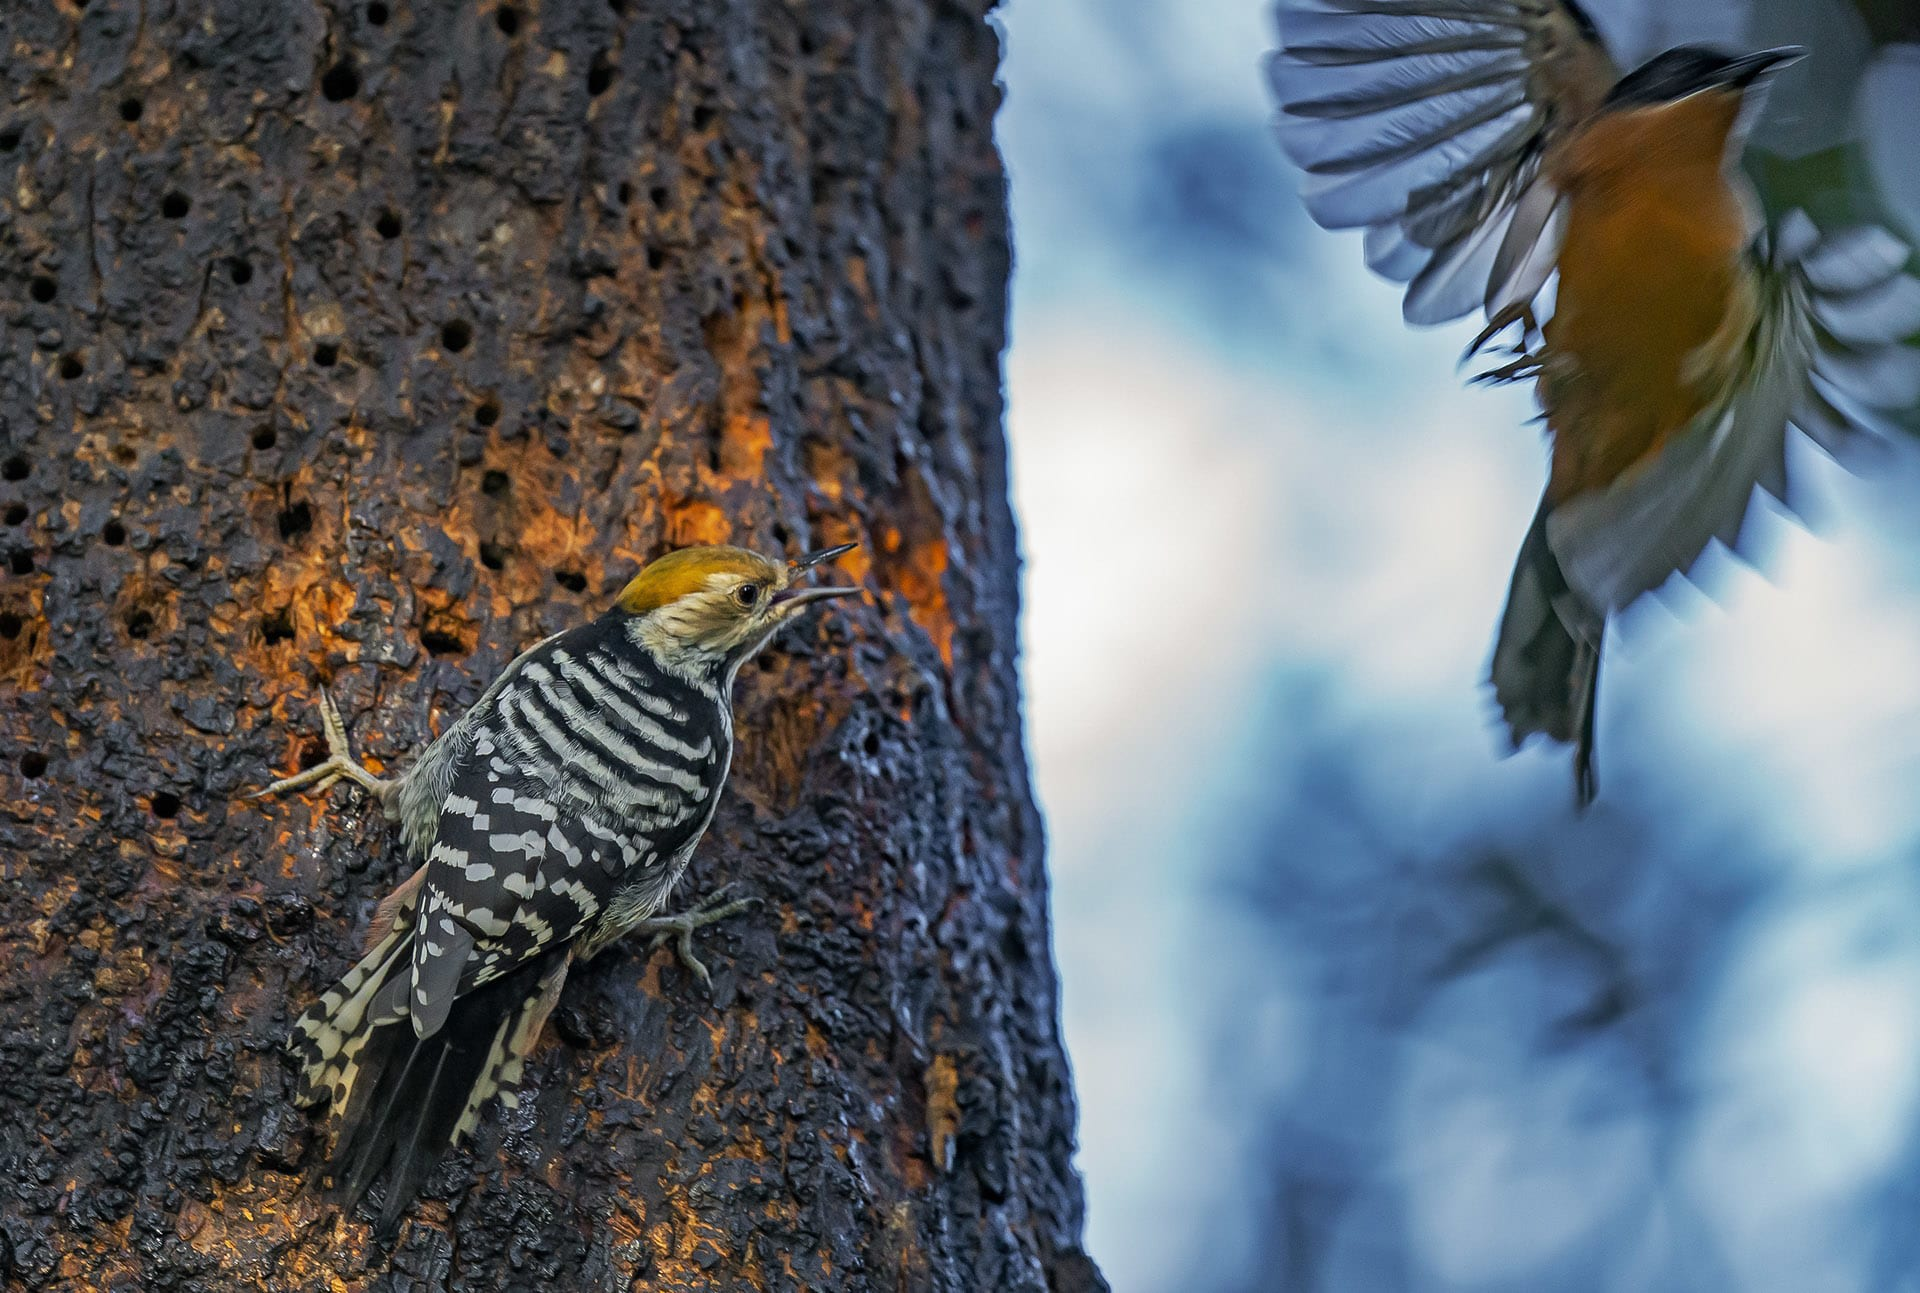 """The brown-fronted woodpecker (Dendrocoptes auriceps) is one of the smaller members of the pack. With prized trees like the moru oak, different species of woodpeckers must learn to share the spoils. Researchers have found that in places where multiple species of woodpeckers coexist, they amicably split their food resources — with different species will forage at different heights on different parts of the tree.  A tree that attracts woodpeckers, is bound to have several cavities. """"The cavity creating ability of woodpeckers is highly underrated,"""" says Kumar. They create two kinds of cavities — shallow ones for roosting, and deep ones with enlarged vertical chambers for nesting that can usually accommodate parent woodpeckers and up to four young ones. """"There's huge competition for these cavities from not just other birds such as owls, mynas, hornbills or tits that don't build their own nests, but also mammals such as bats, palm civets, squirrels, and reptiles such as snakes and monitor lizards,"""" says Kumar."""